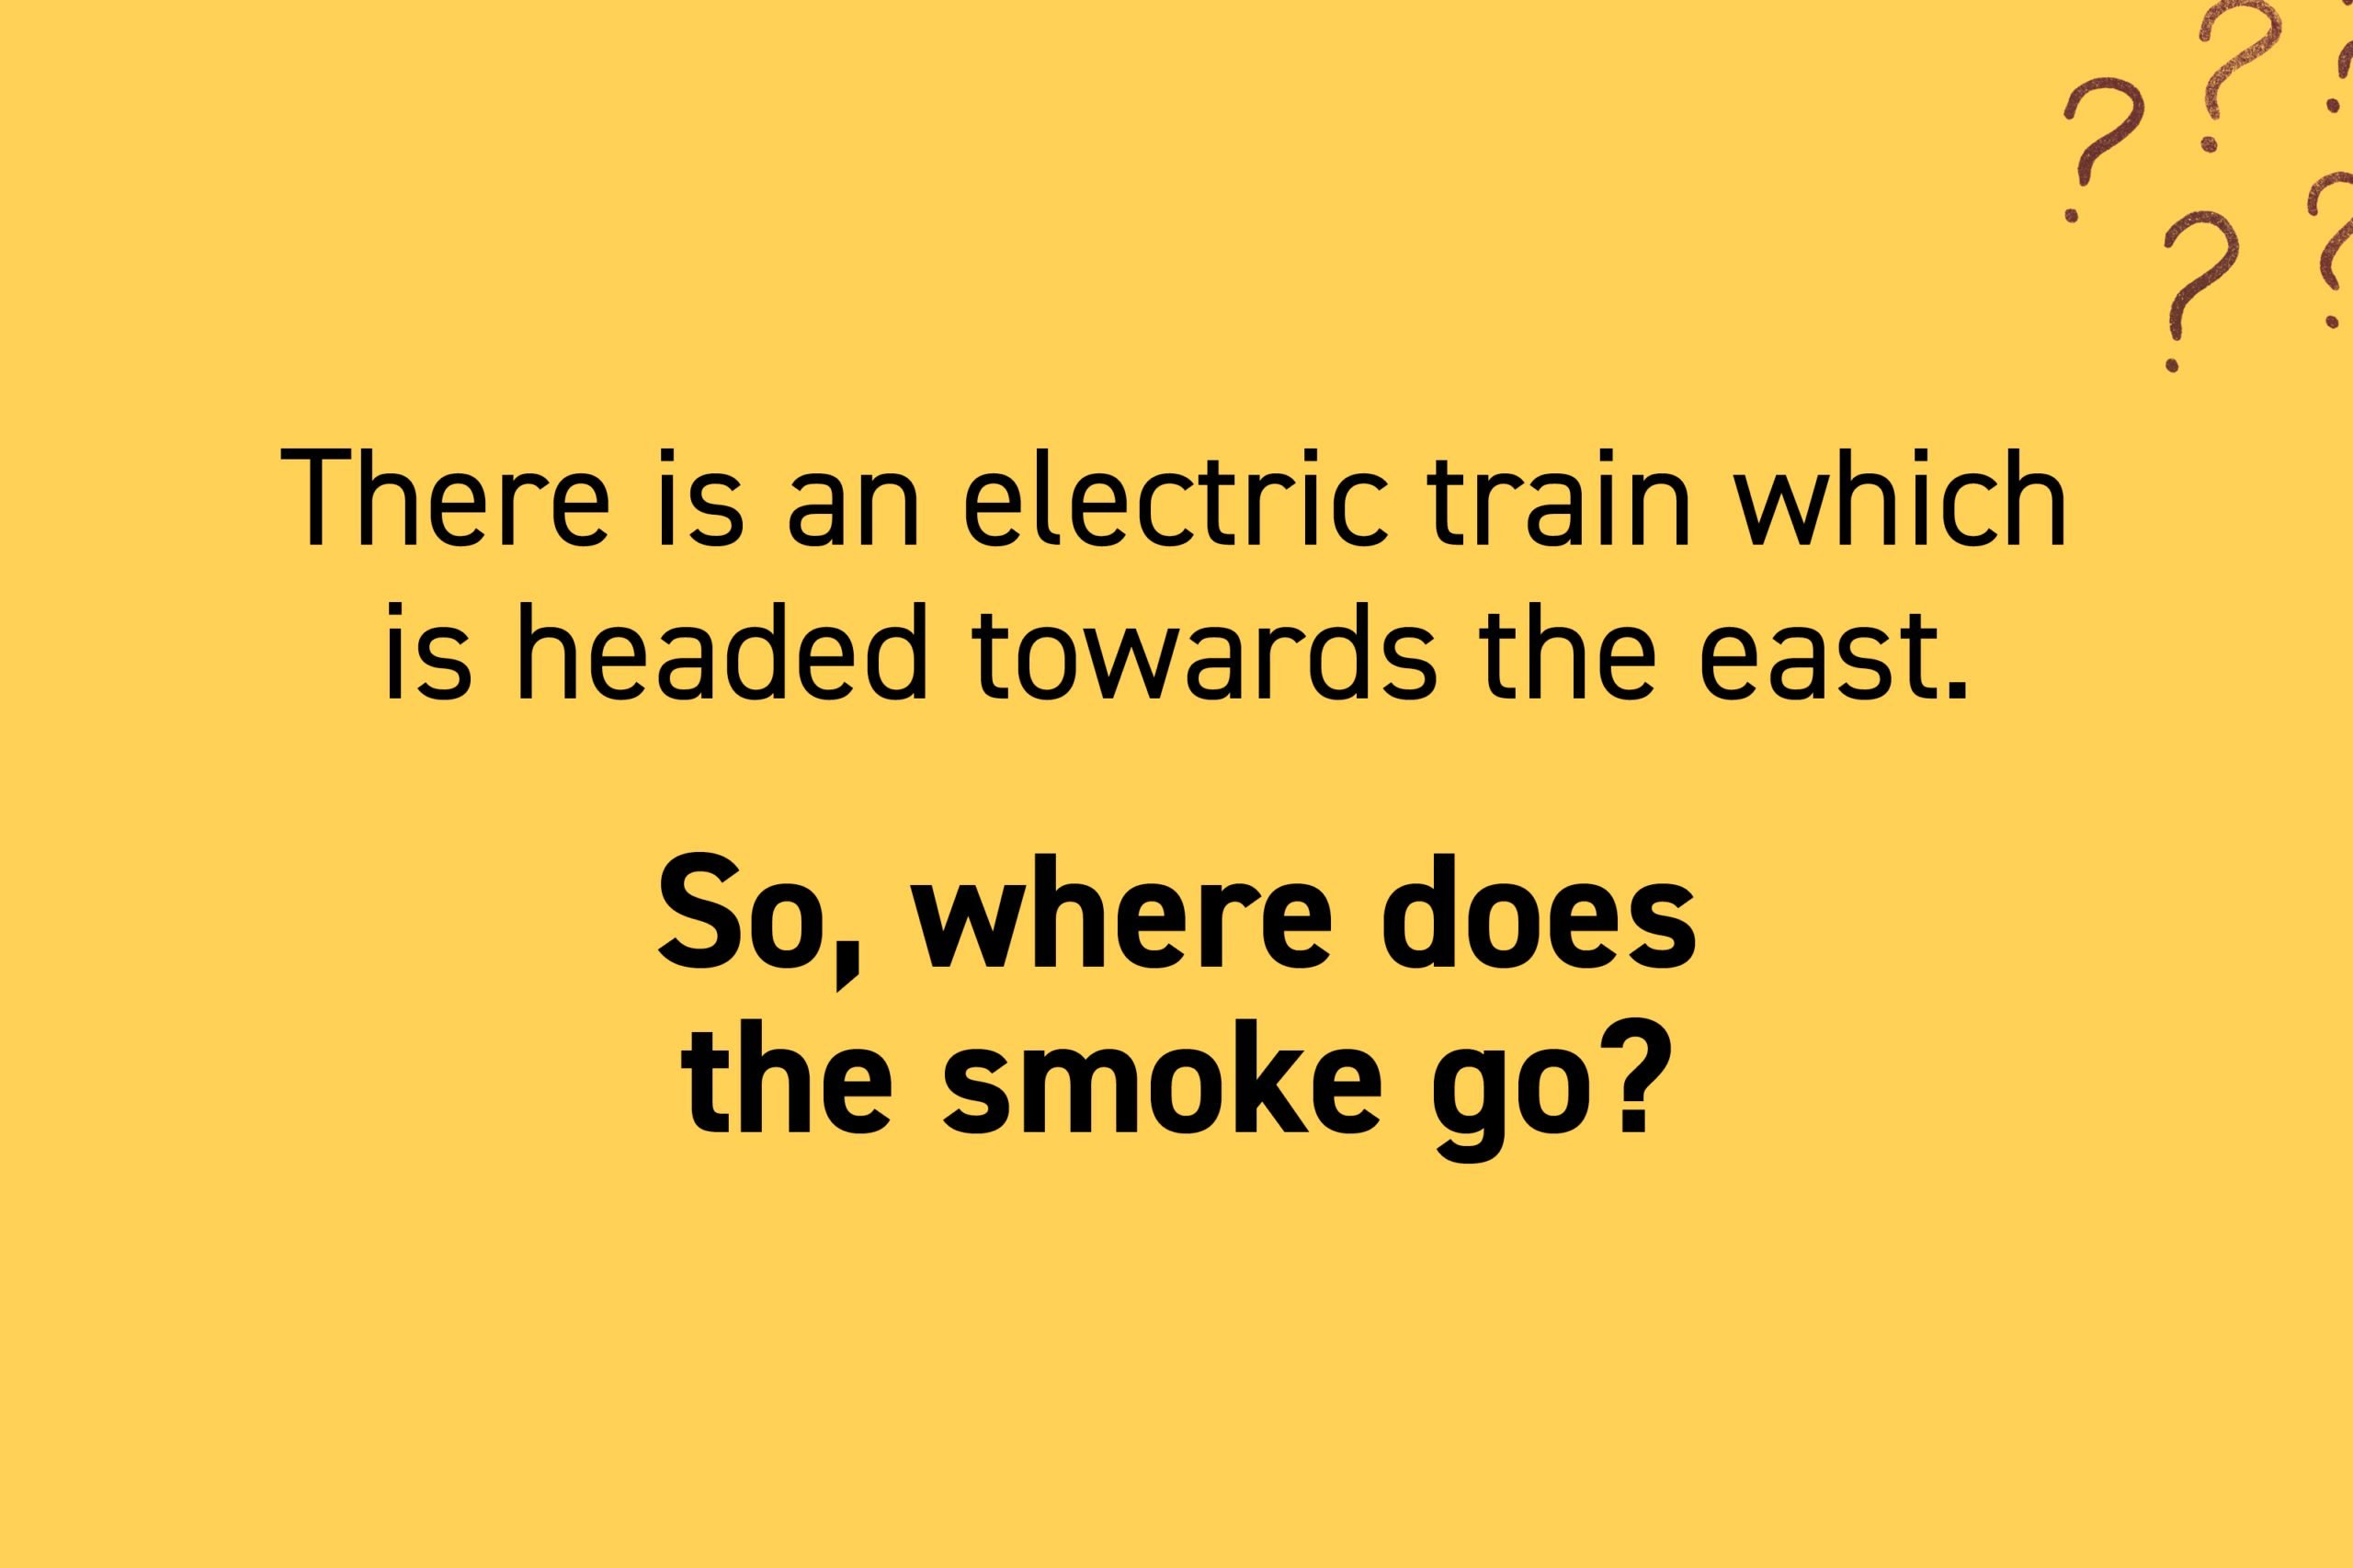 There is an electric train which is headed towards the east. So, where does the smoke go?